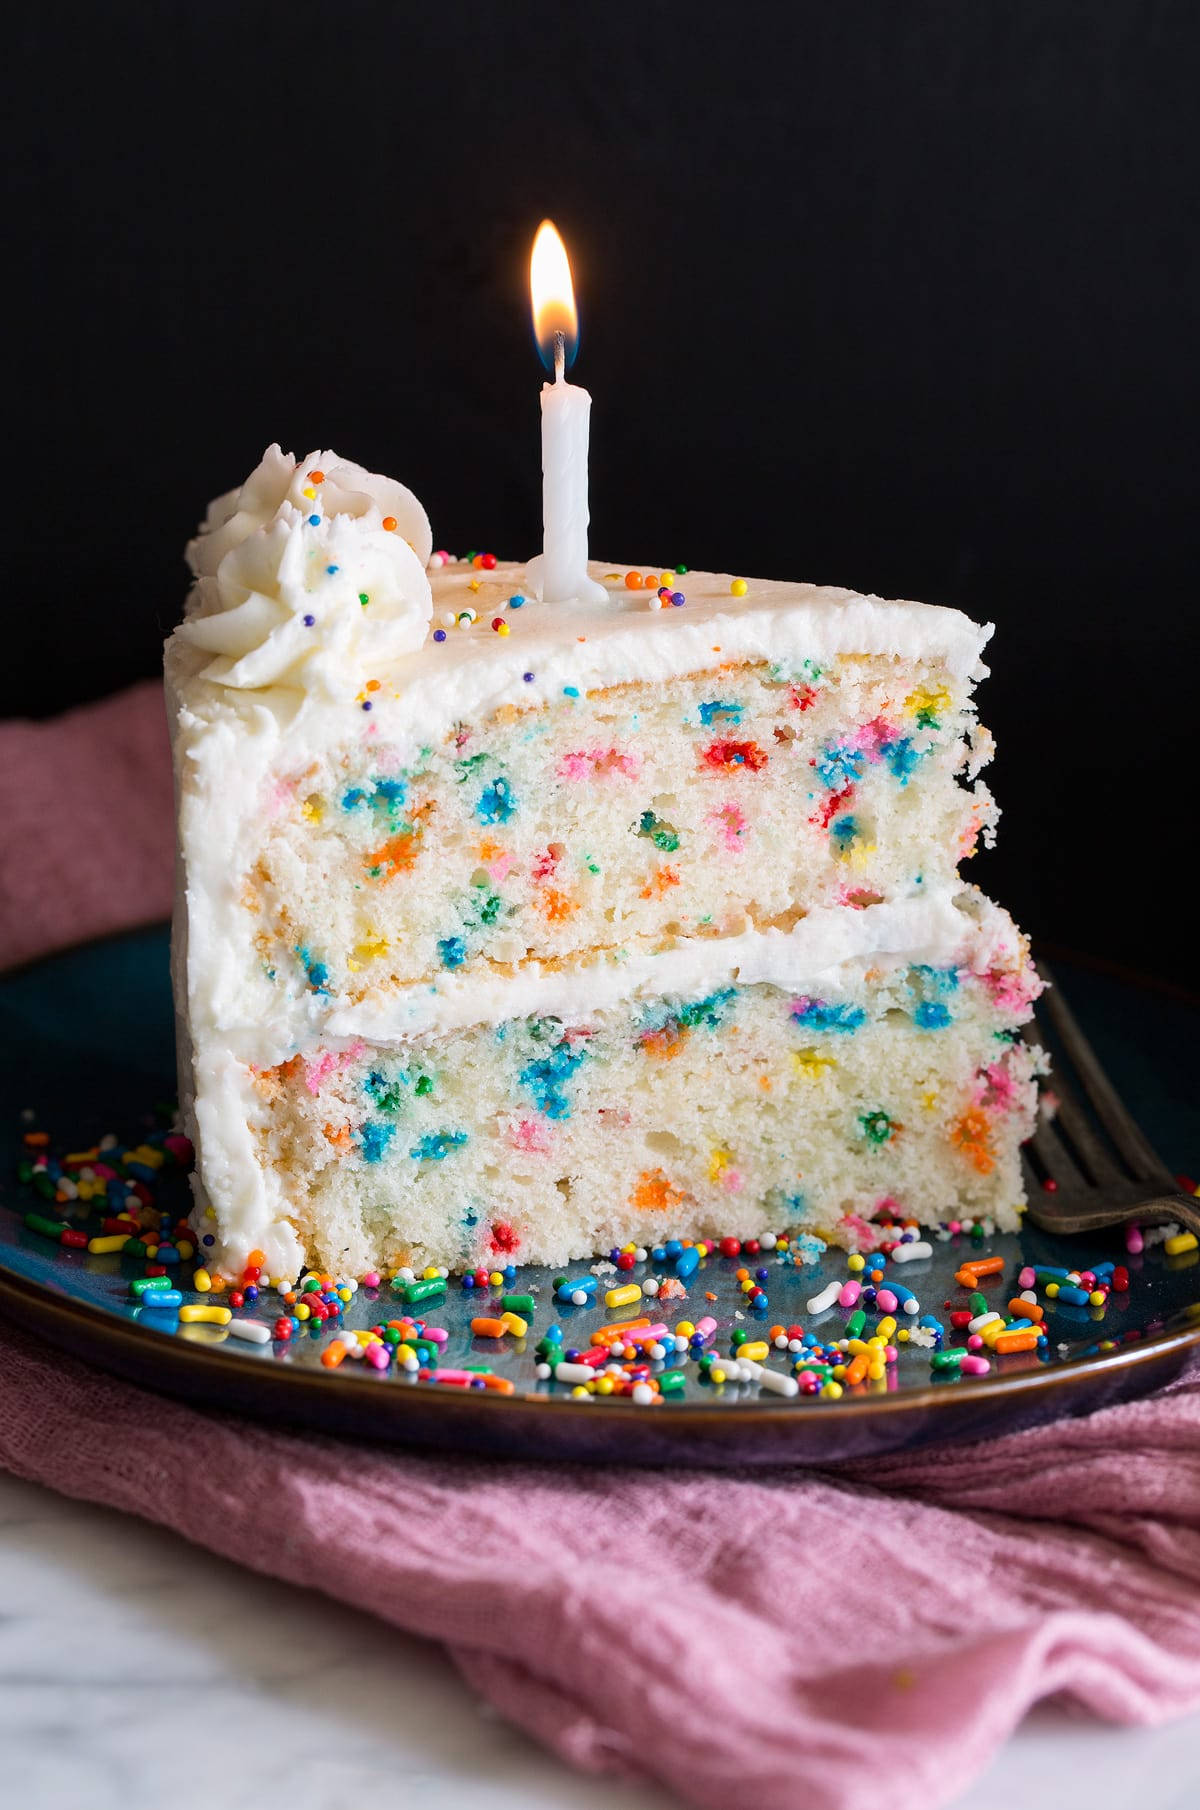 Outstanding Best Birthday Cake Recipe Funfetti Cake Cooking Classy Funny Birthday Cards Online Alyptdamsfinfo